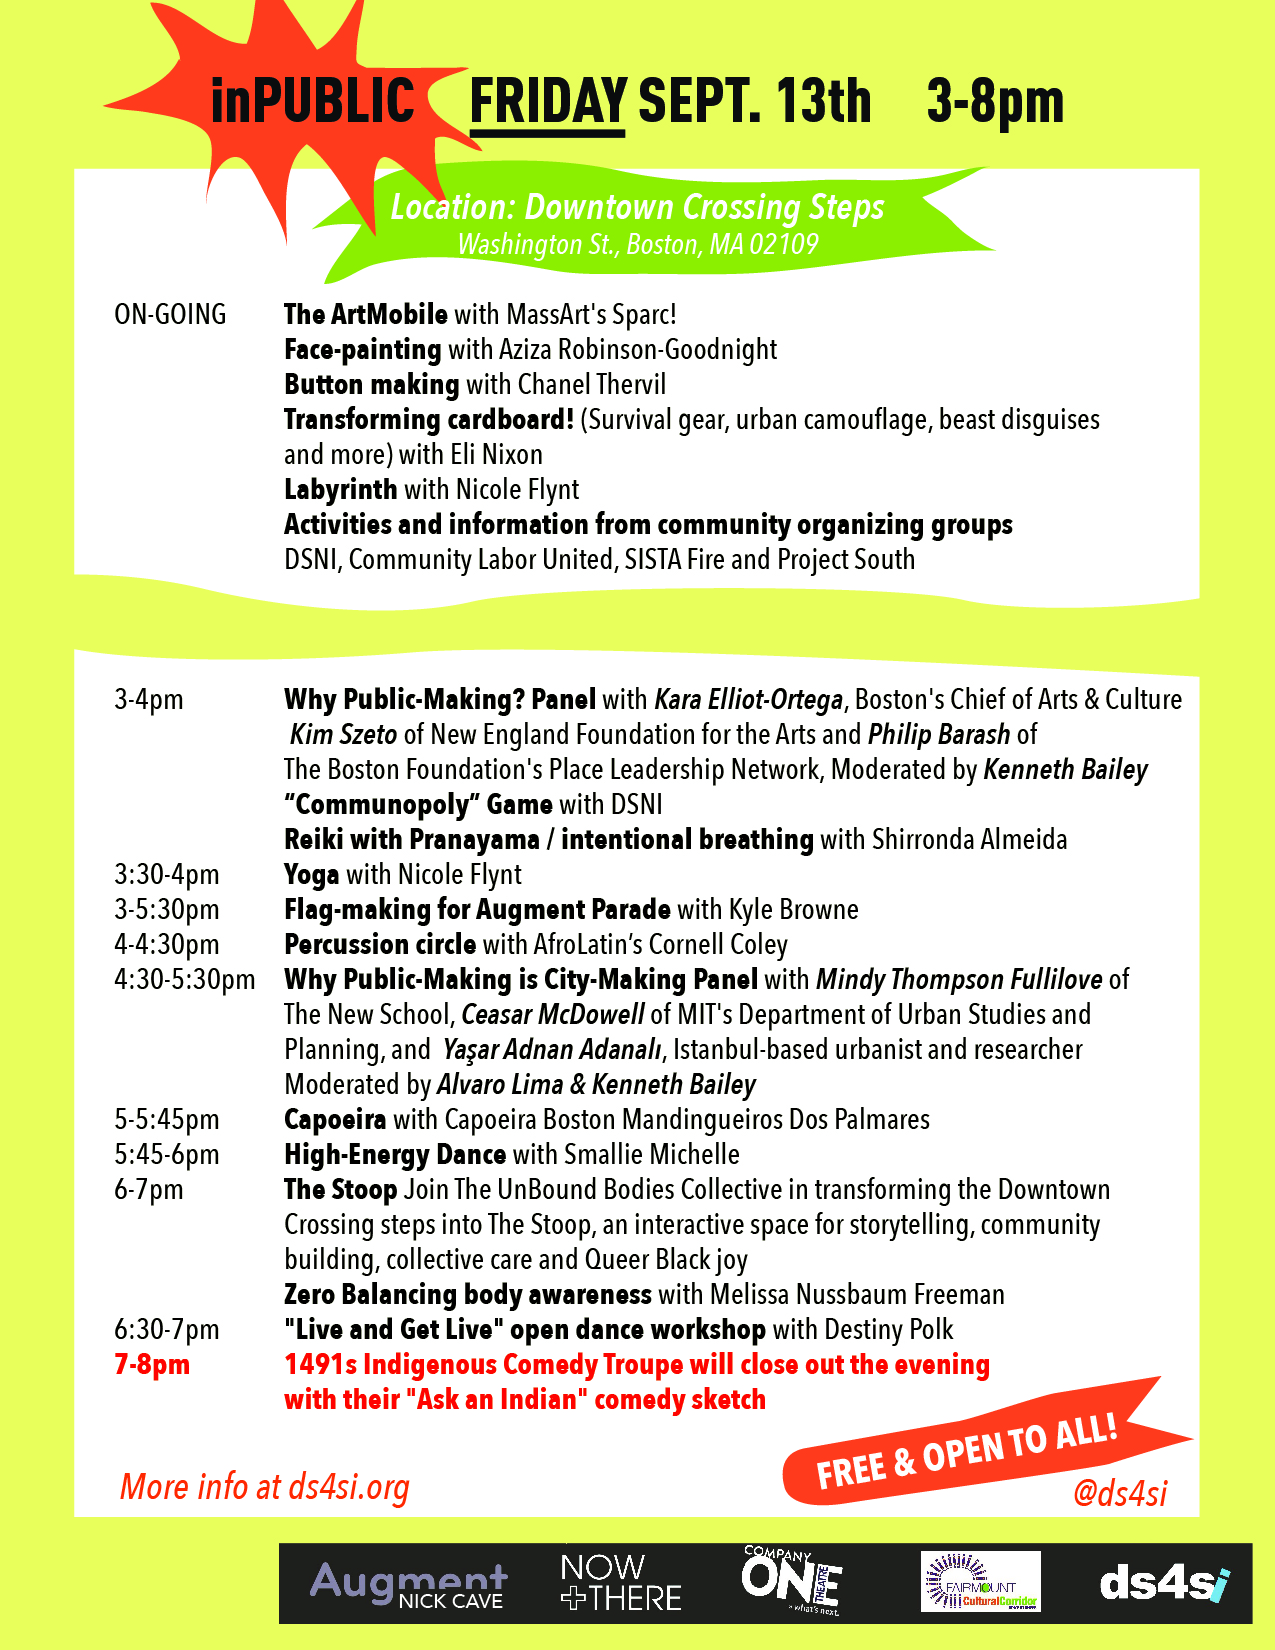 DS4SI-inPUBLIC-Schedule-Friday-DowntownCrossing.jpg